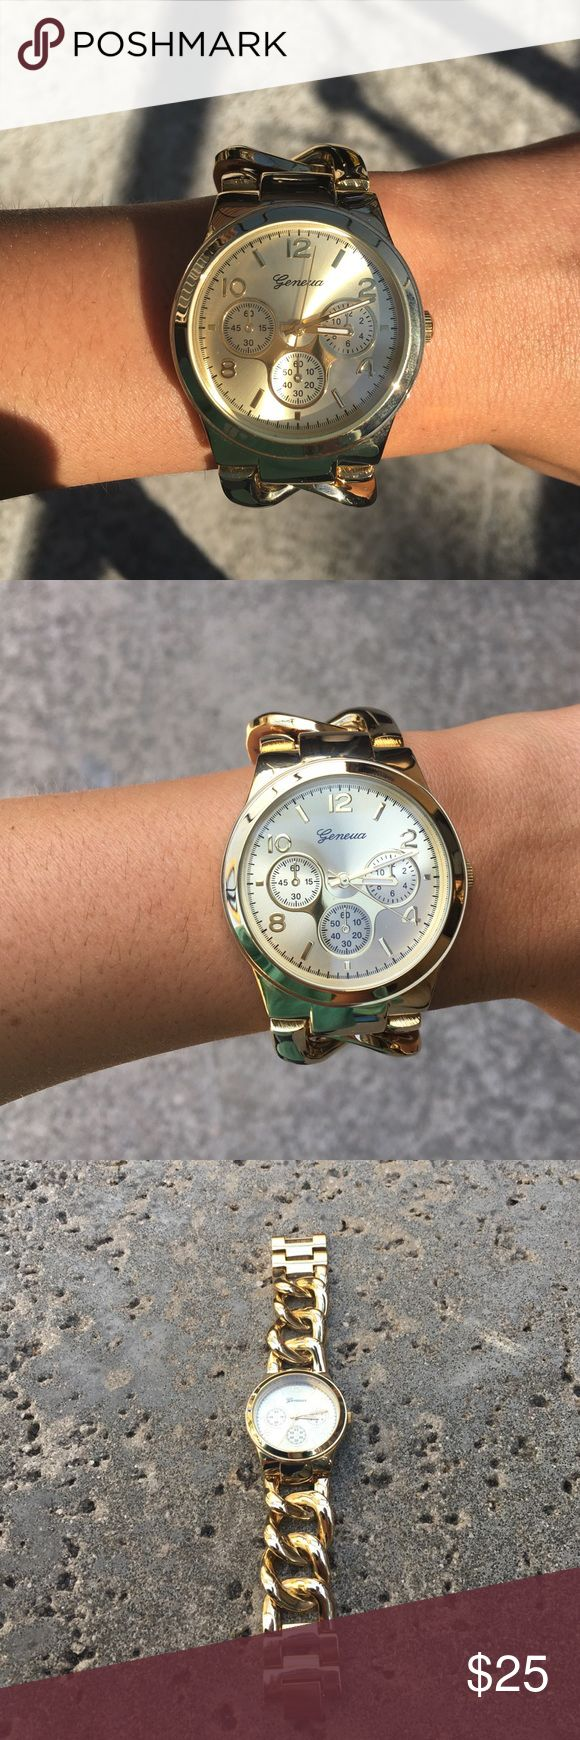 Charming Charlie's Geneva Gold Watch Geneva Gold Watch. Very stylish and looks like real gold. Would schnazz up any outfit! Great quality watch with new battery installed. Small scratches on stainless steel back. Willing to negotiate a reasonable price! Geneva Platinum Accessories Watches